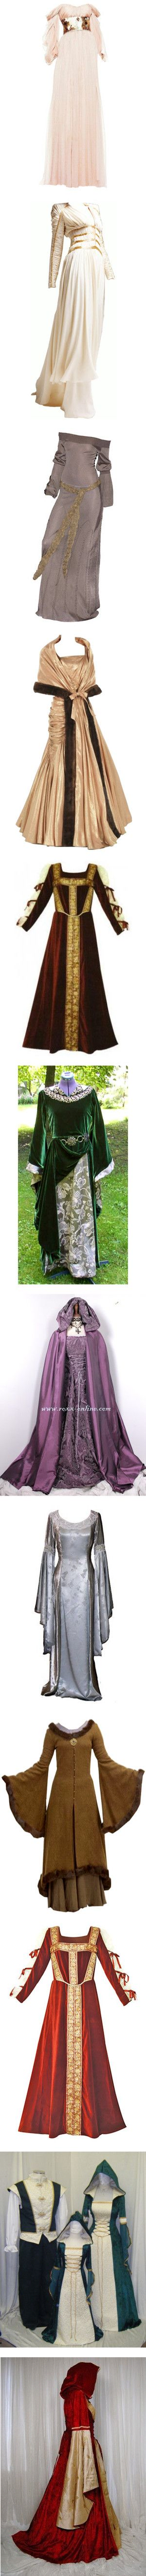 """""""Narnia Clothes :)"""" by starstruck4ever - Game of Thrones/Legend of Zelda cosplay anyone?"""